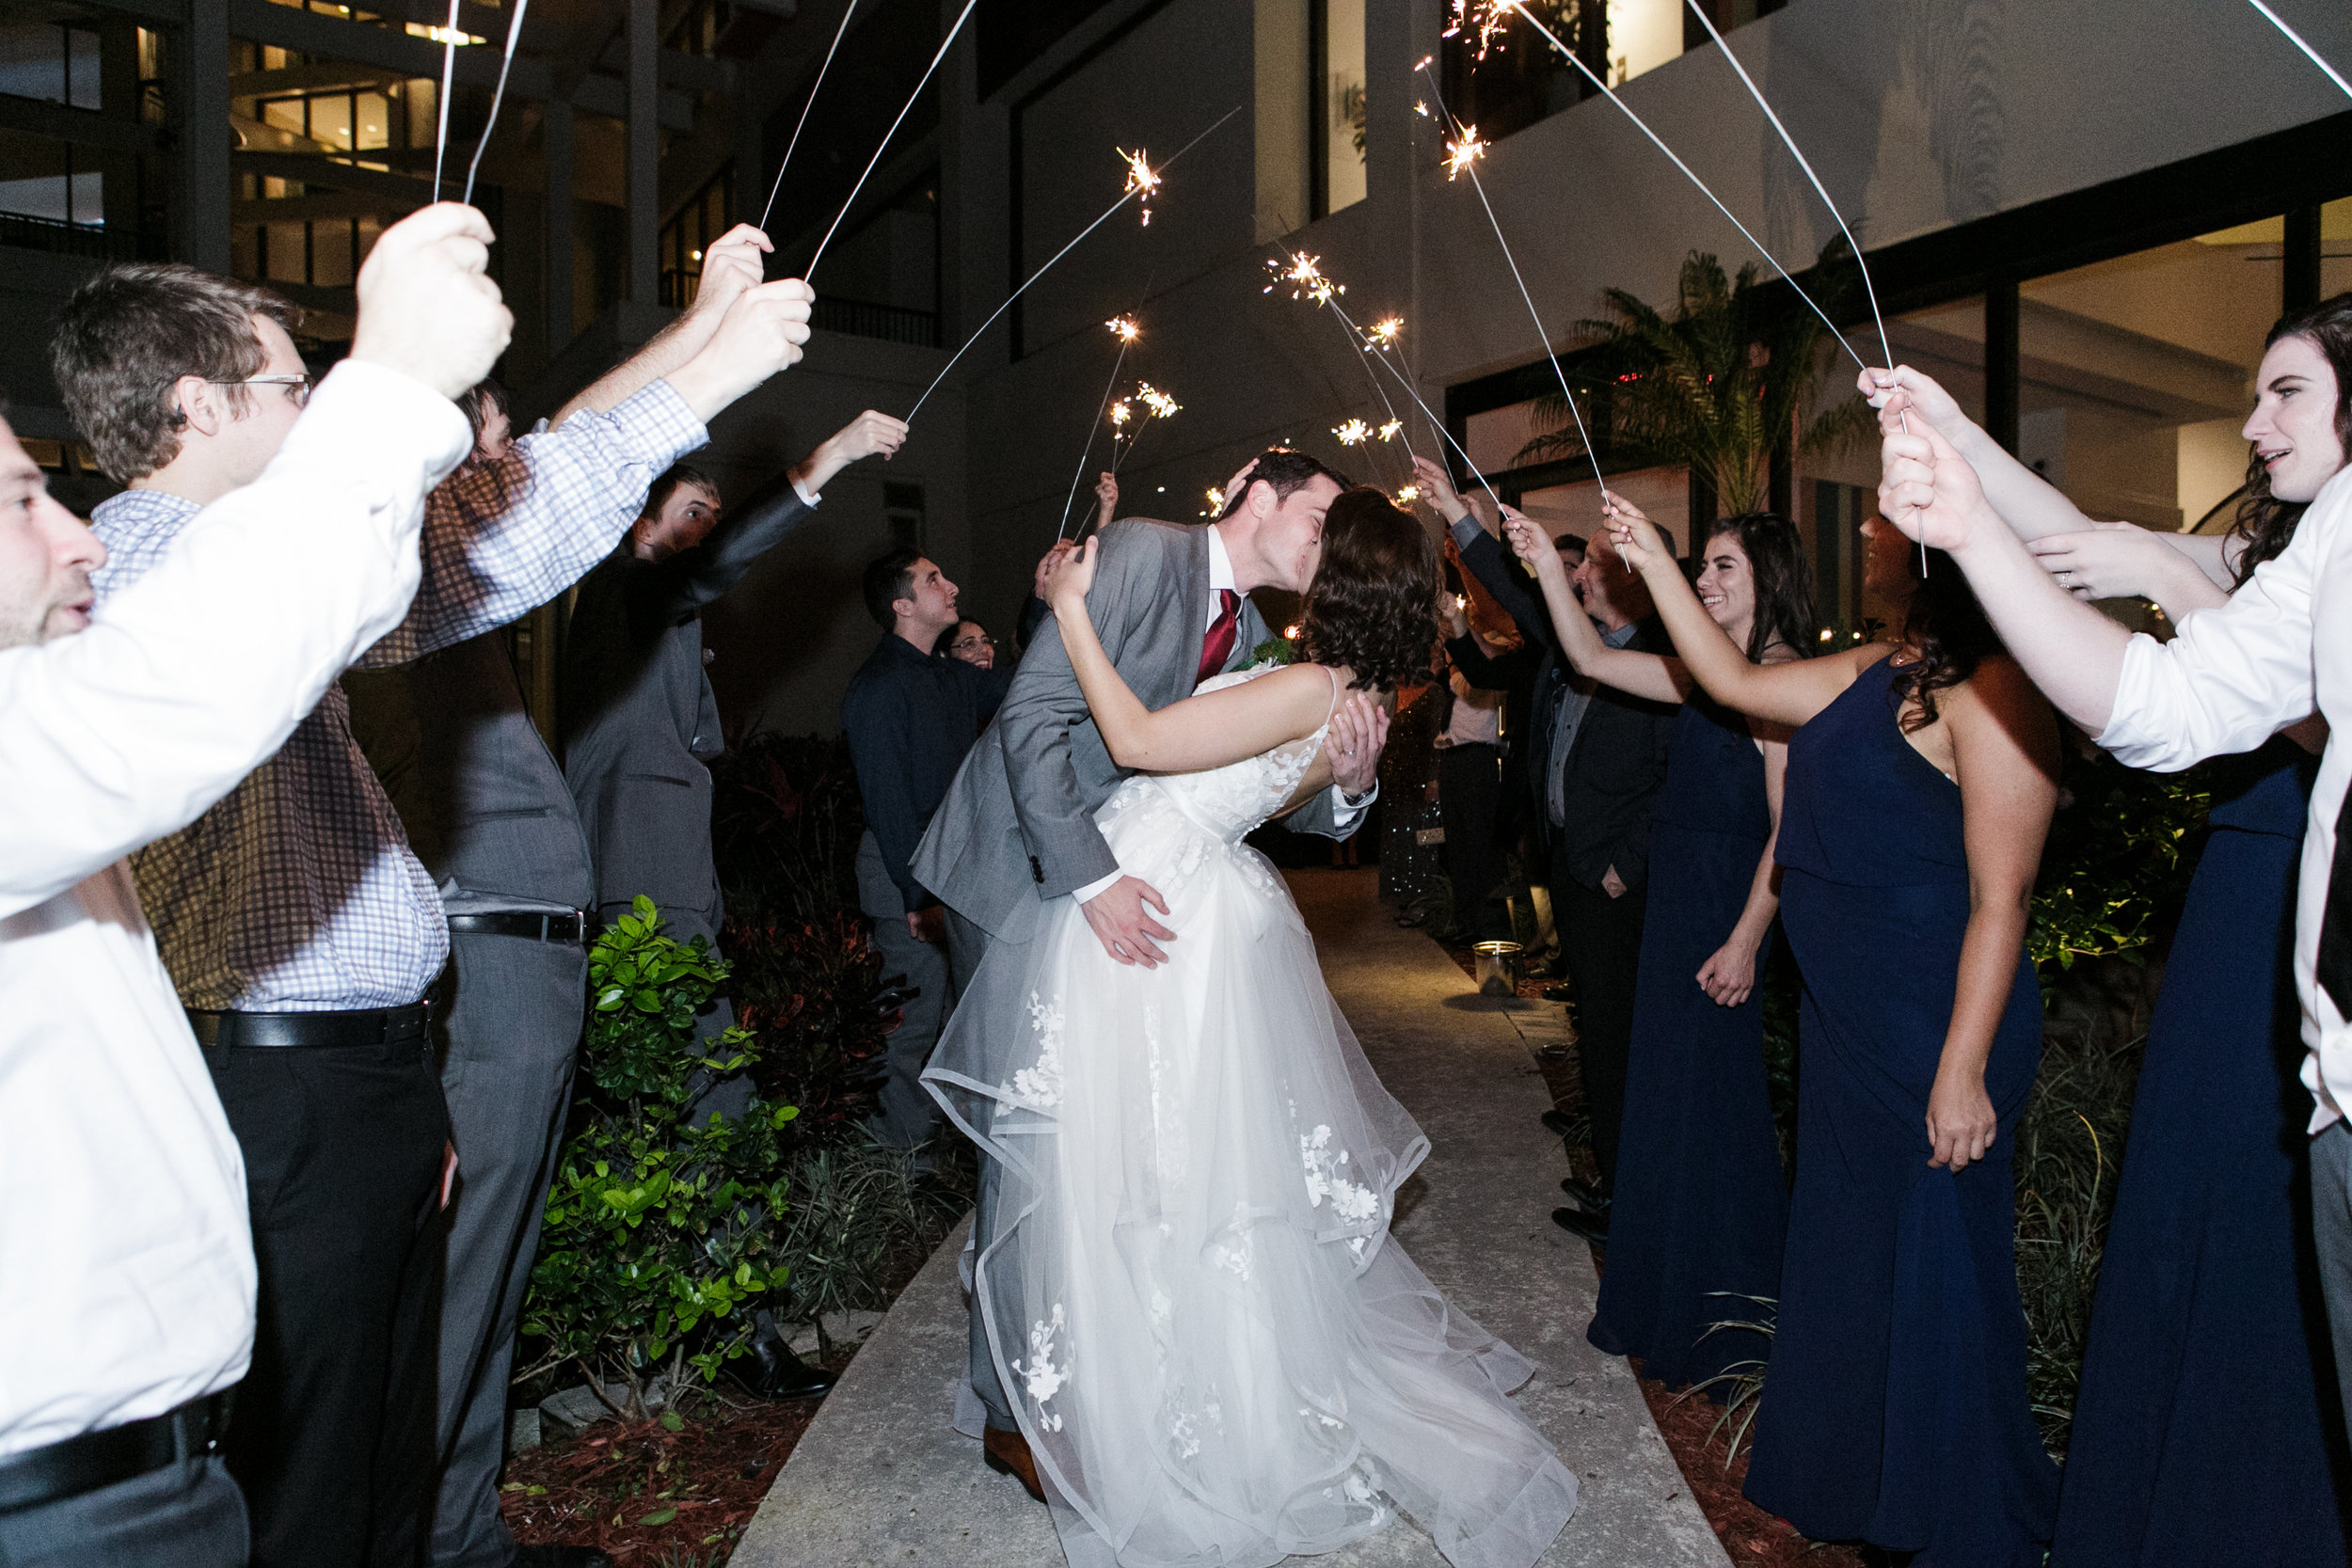 Bluegrass Chic - Bumby Photography - Grand Exit